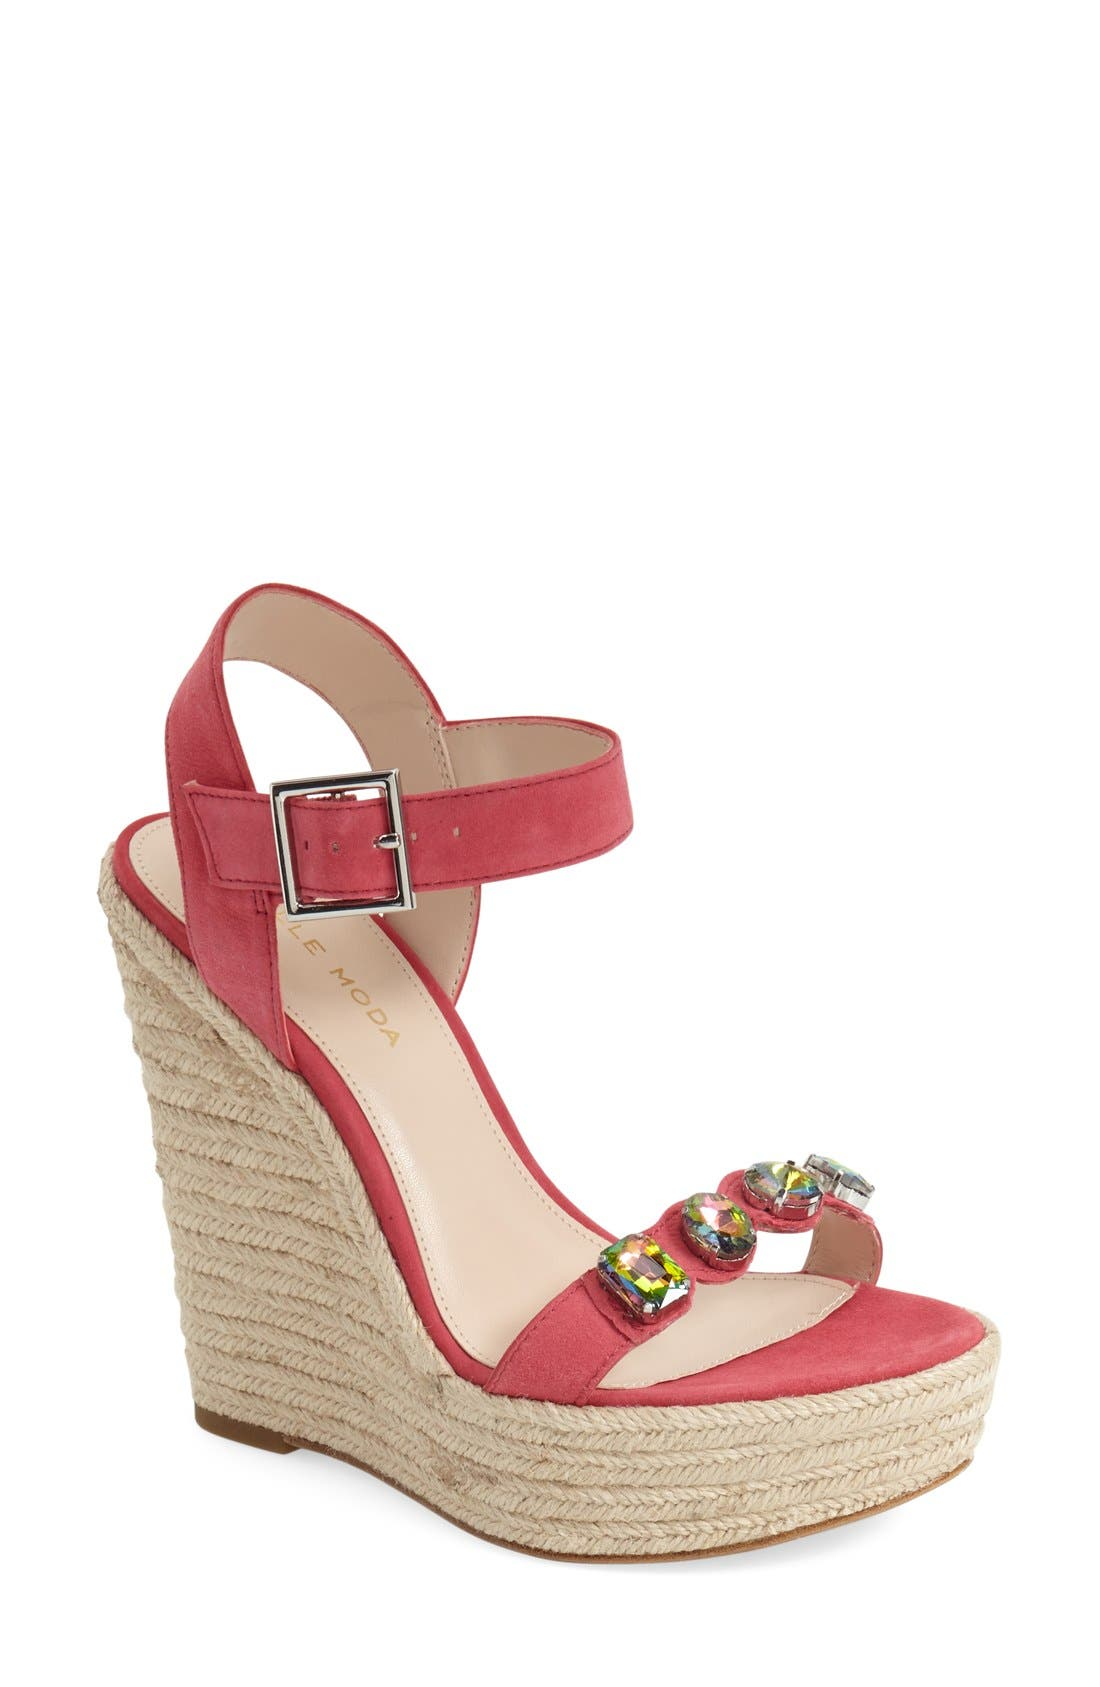 Pelle Moda 'Olea' Wedge Sandal (Women)